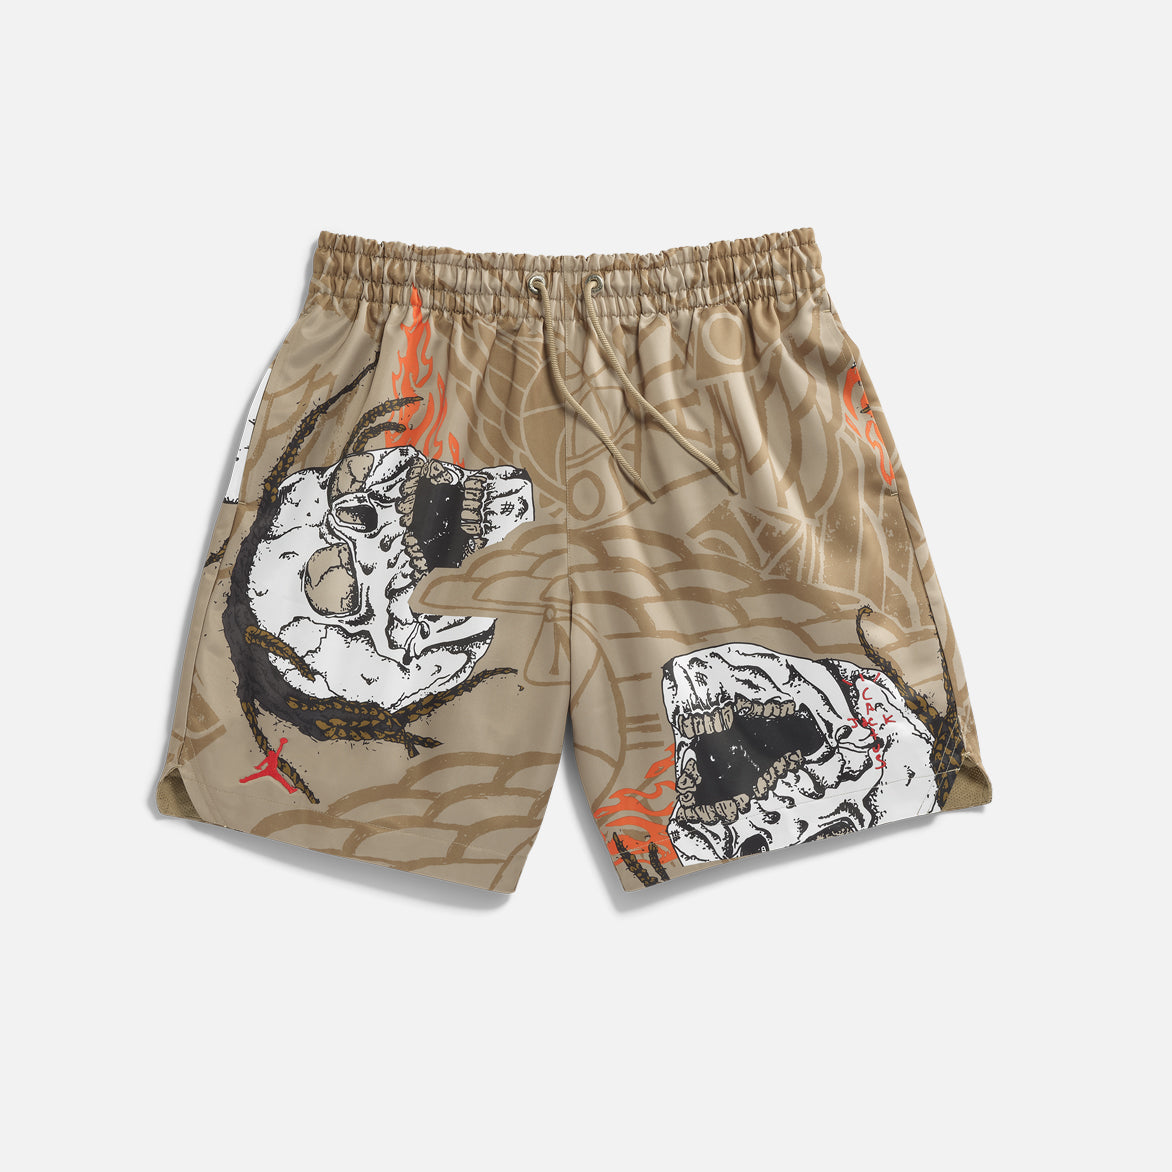 TRAVIS SCOTT X JORDAN POOL SHORT - KHAKI